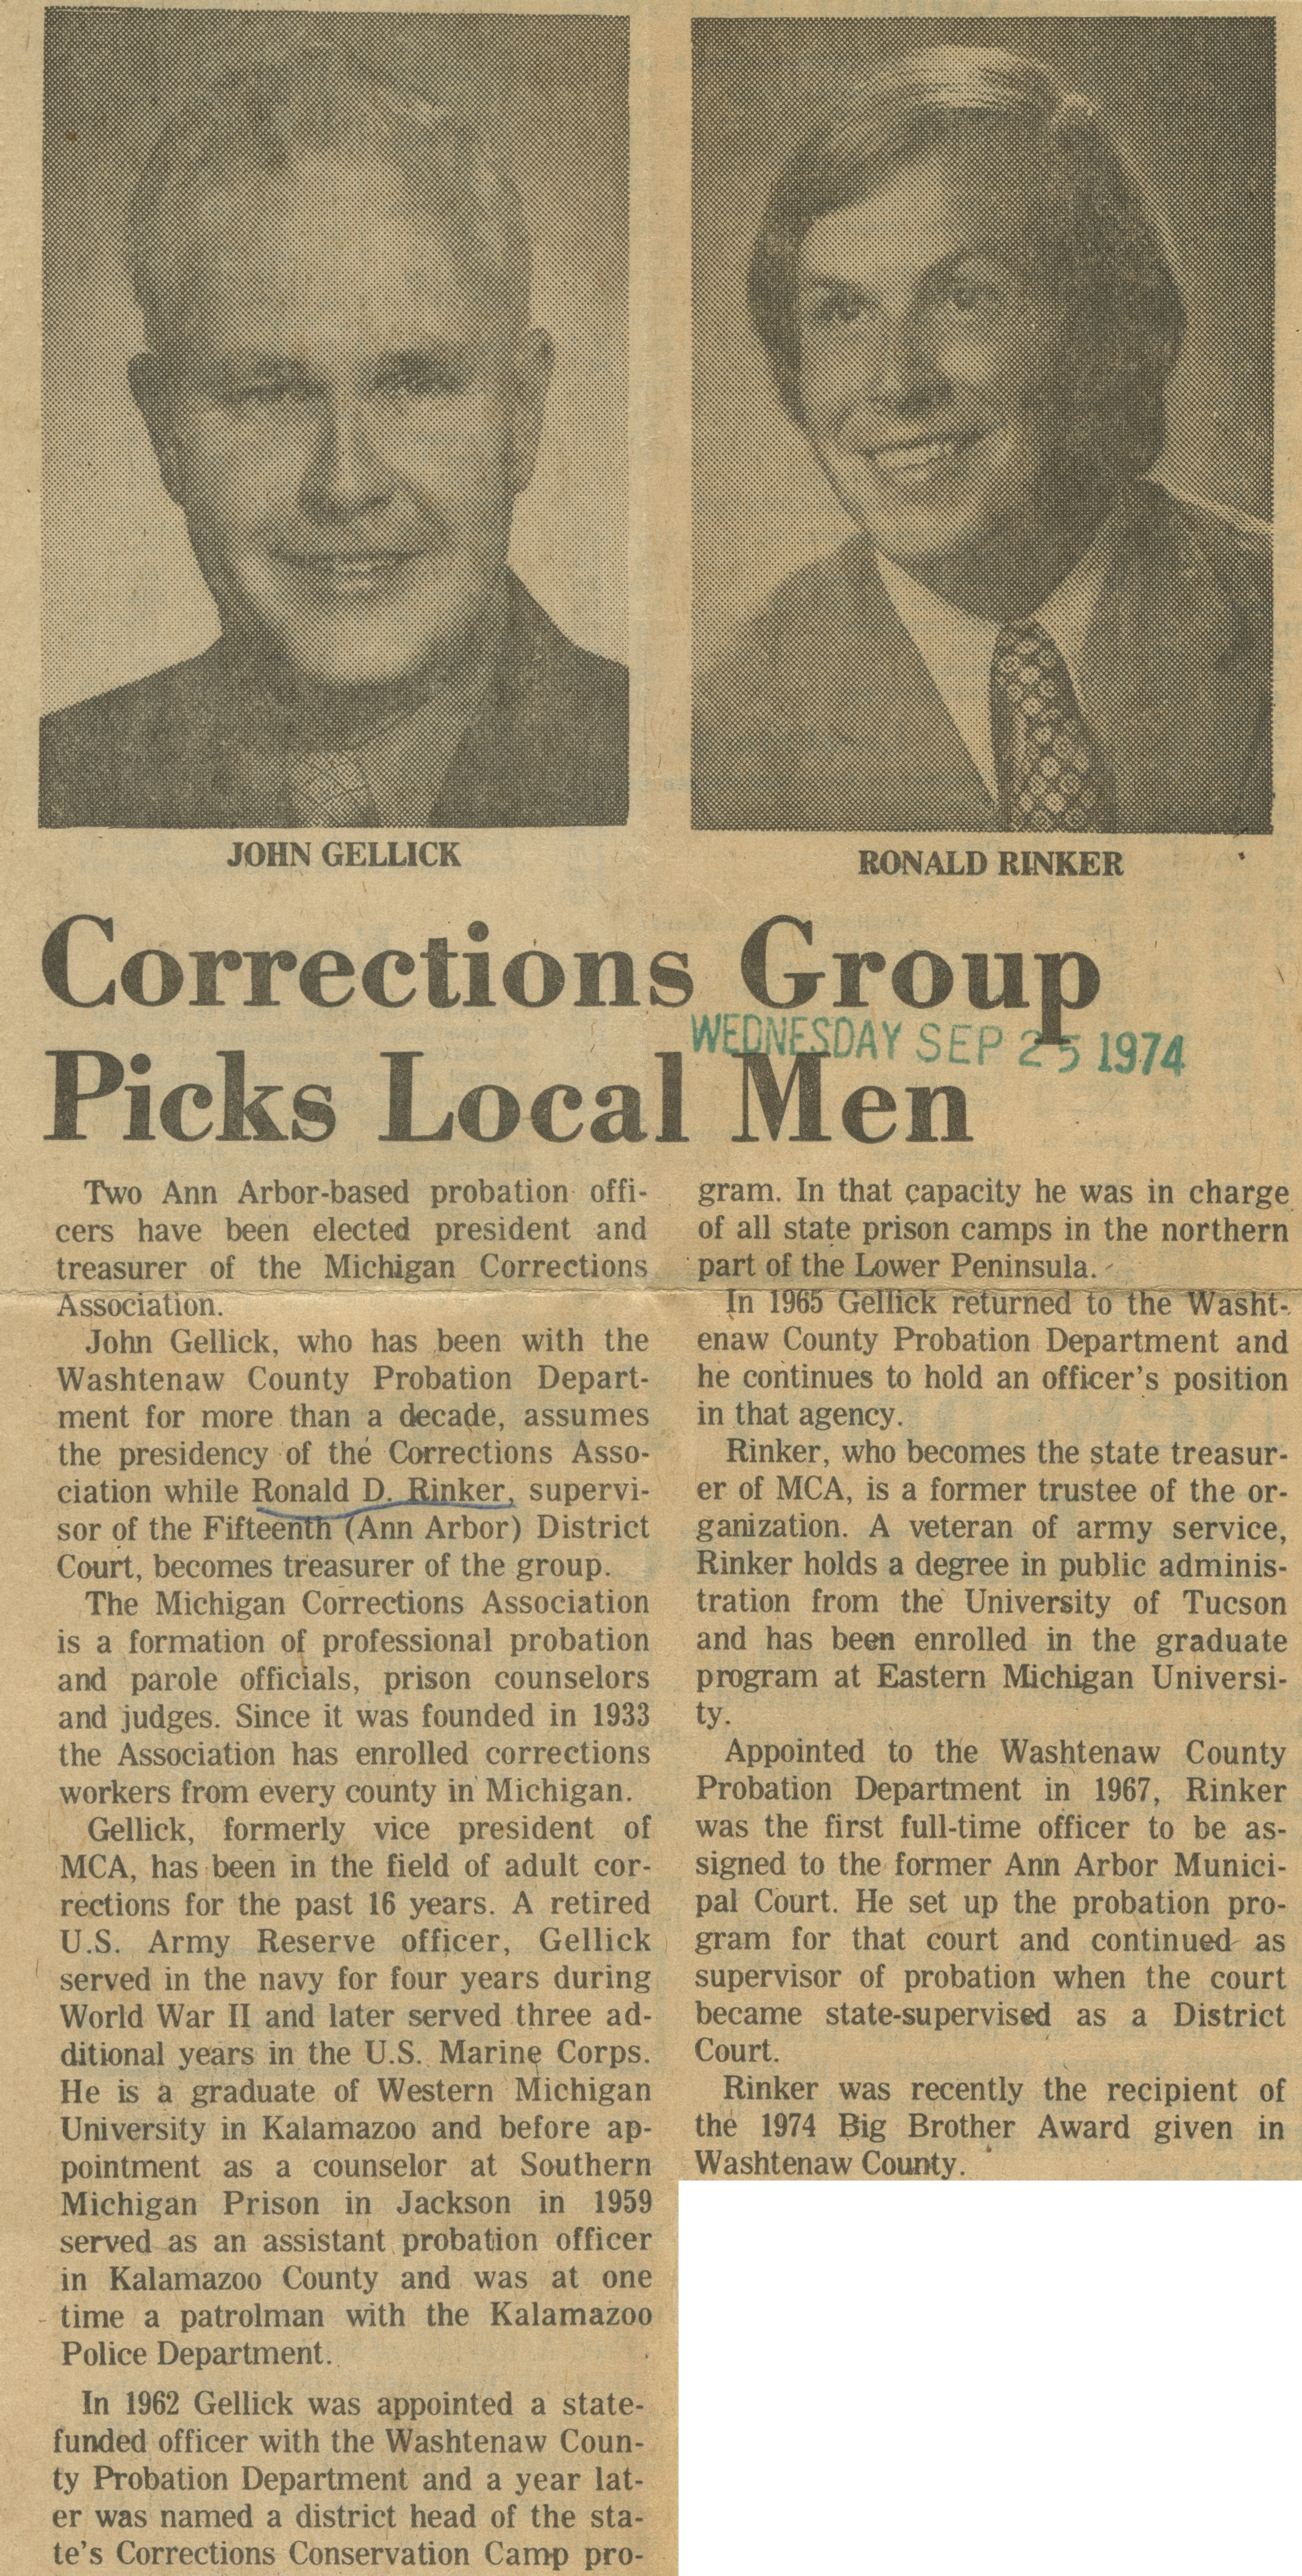 Corrections Group Picks Local Men image